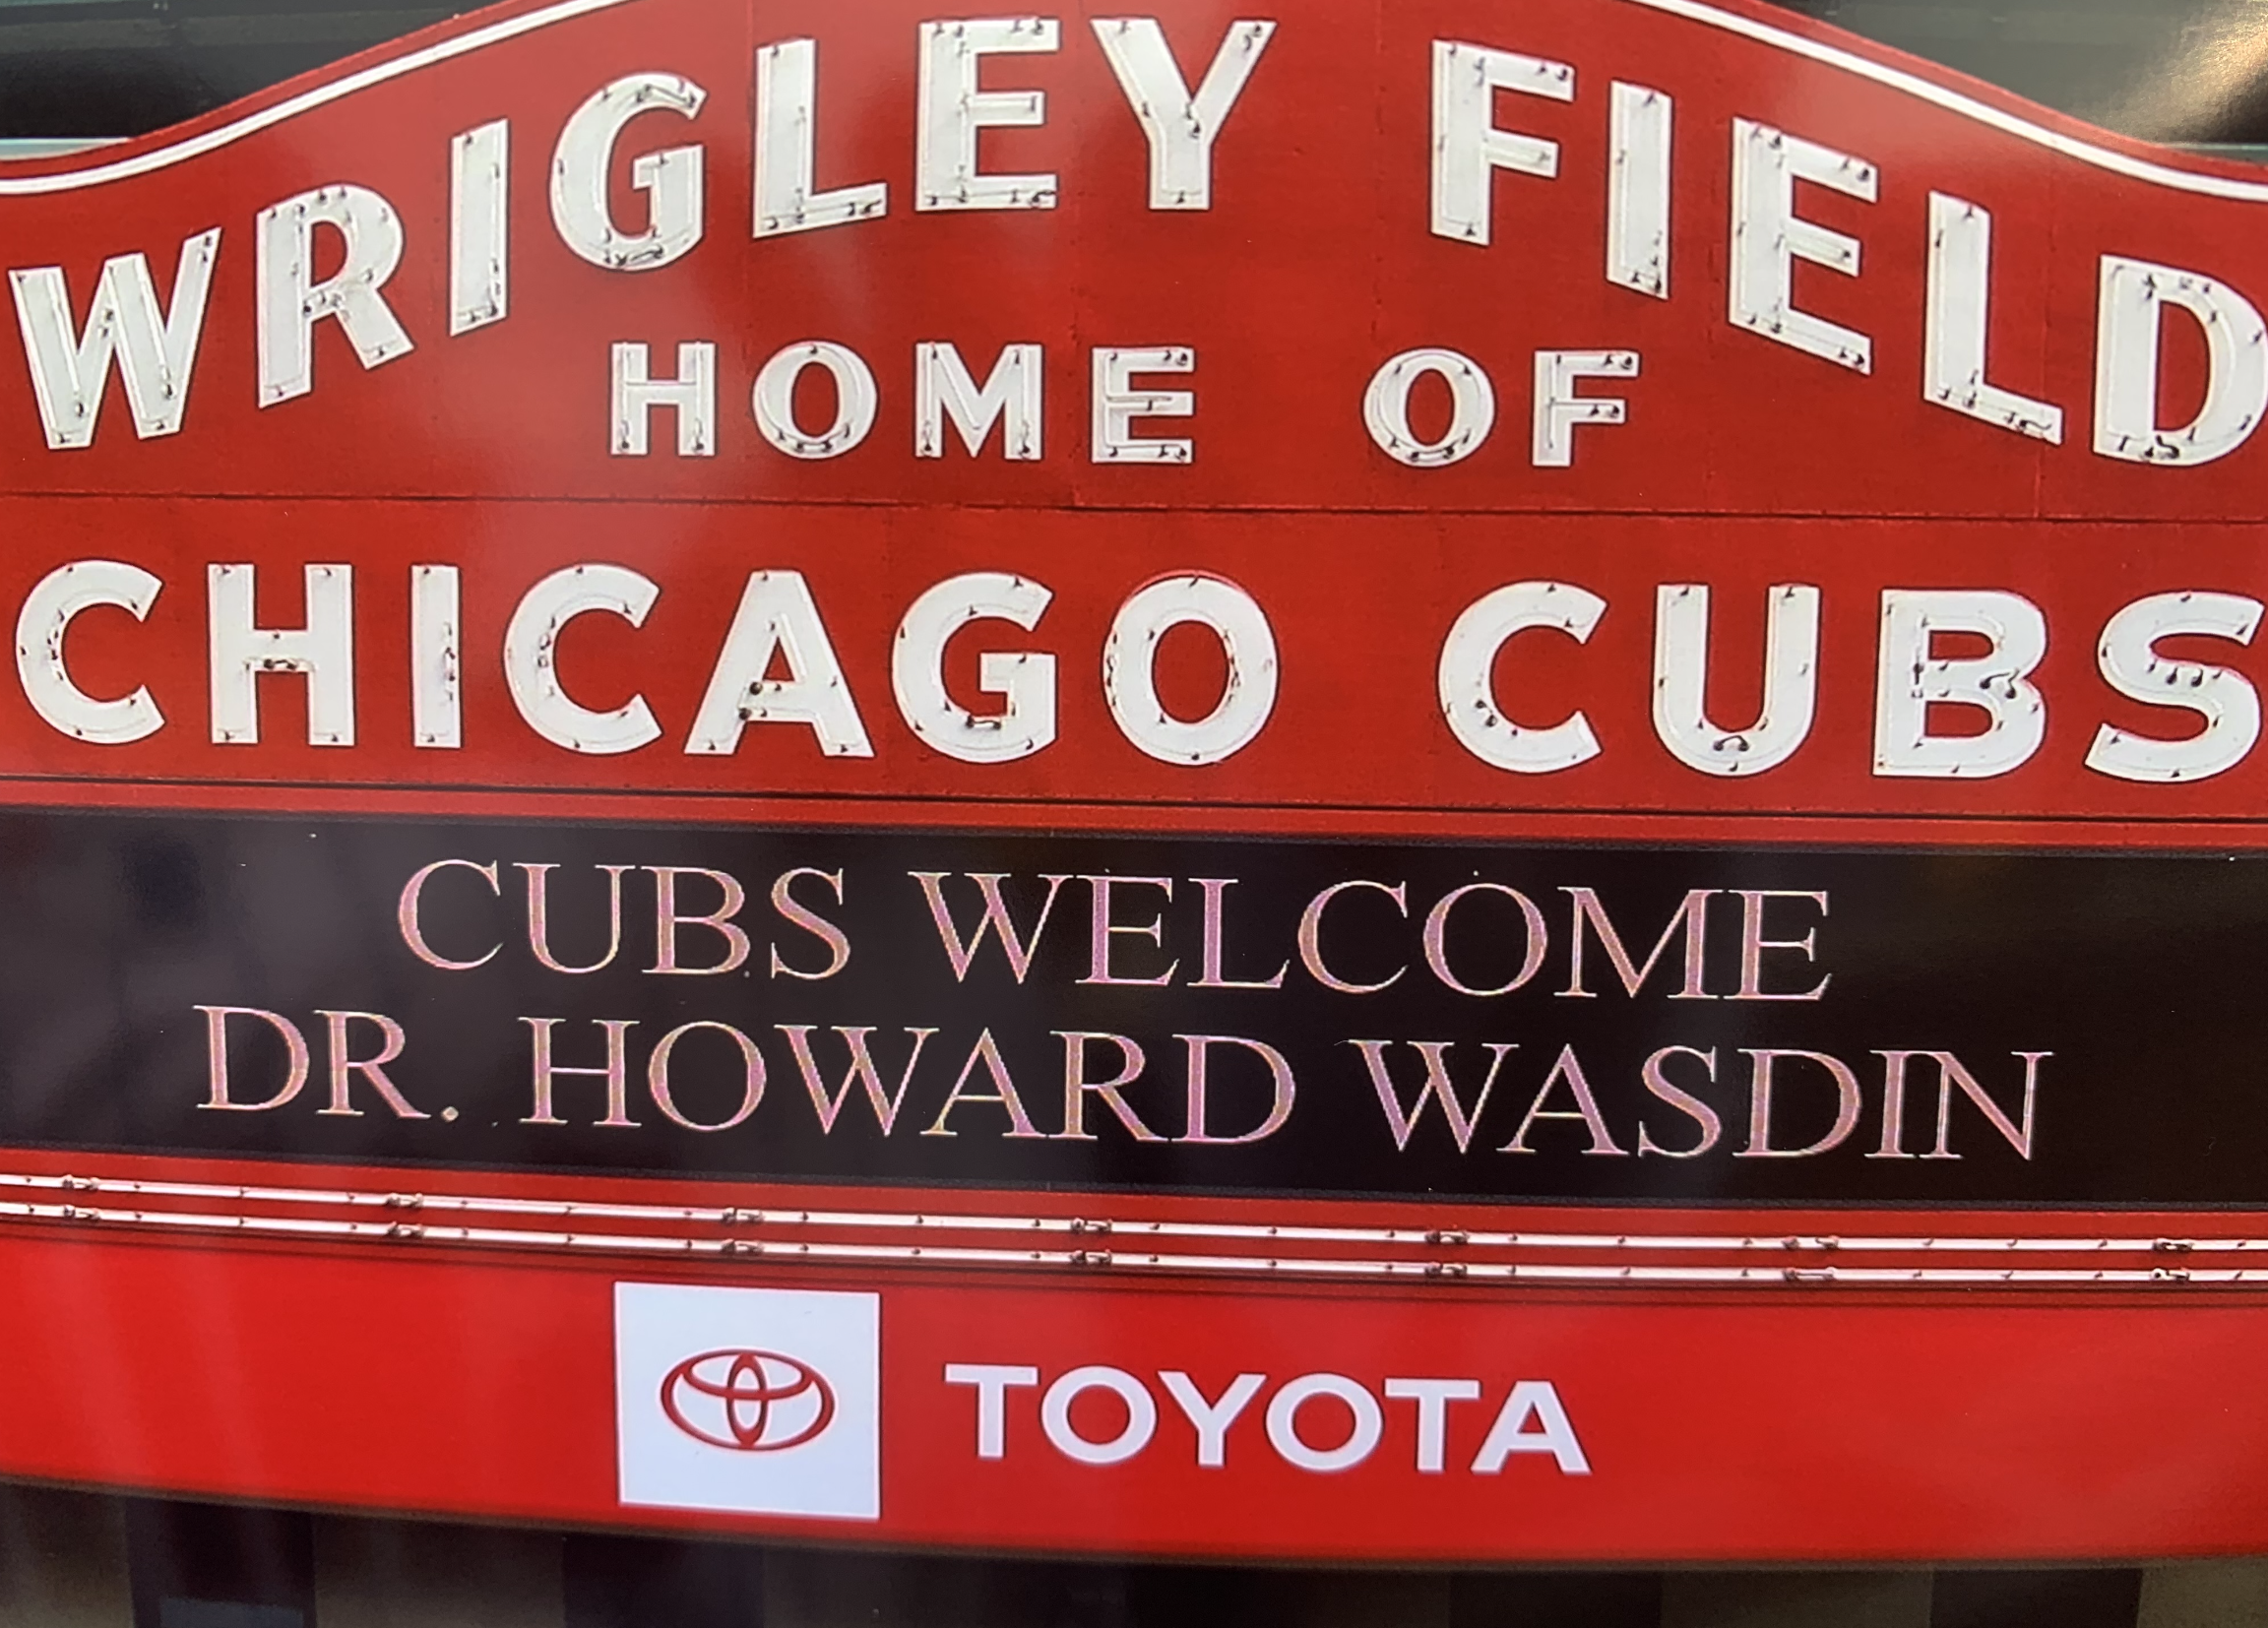 Howard welcomed by the Chicago Cubs to throw the ceremonial first pitch